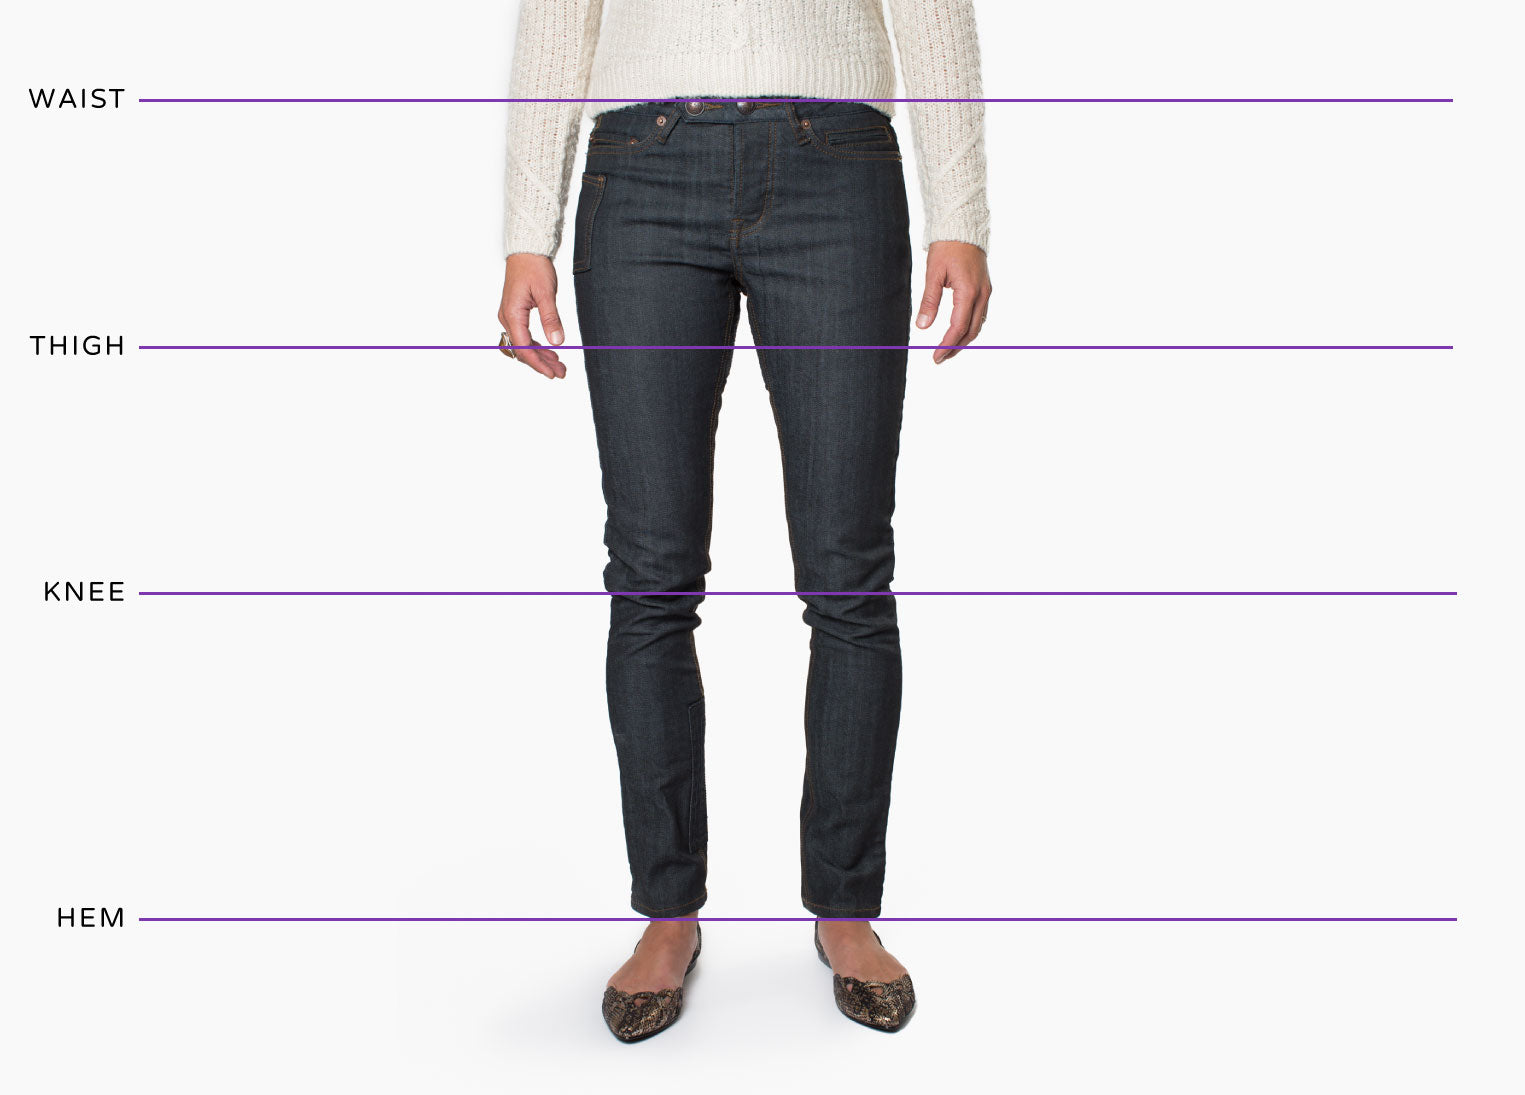 Osloh Bicycle Jeans Fits - Skinny, Relaxed & Shorts Measurements